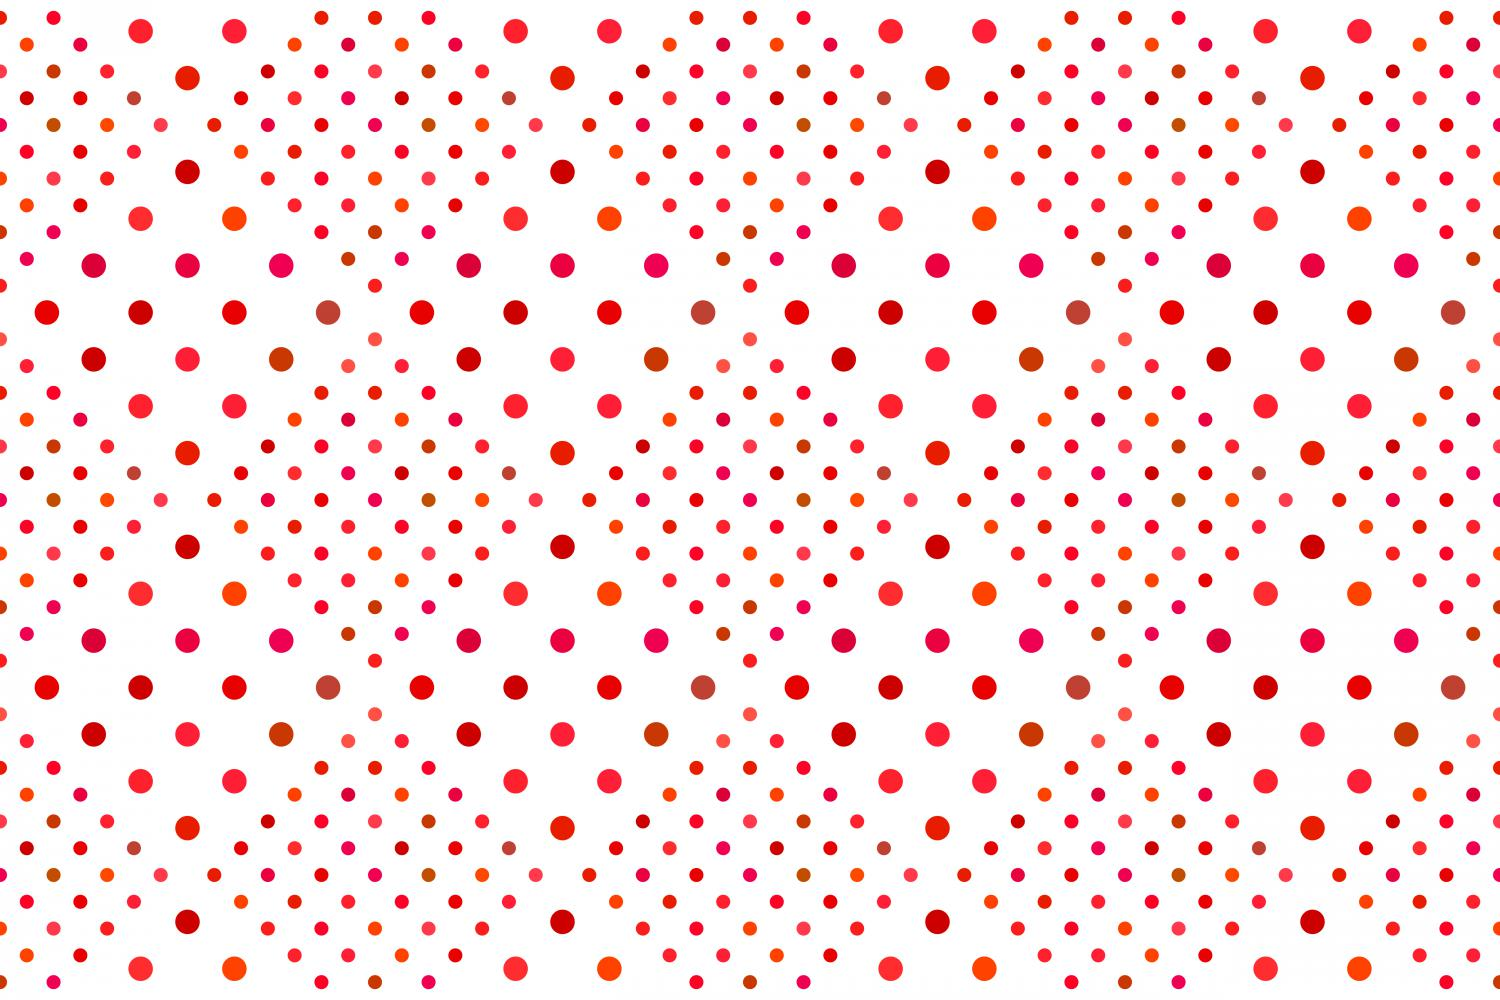 24 Seamless Red Dot Patterns example image 3